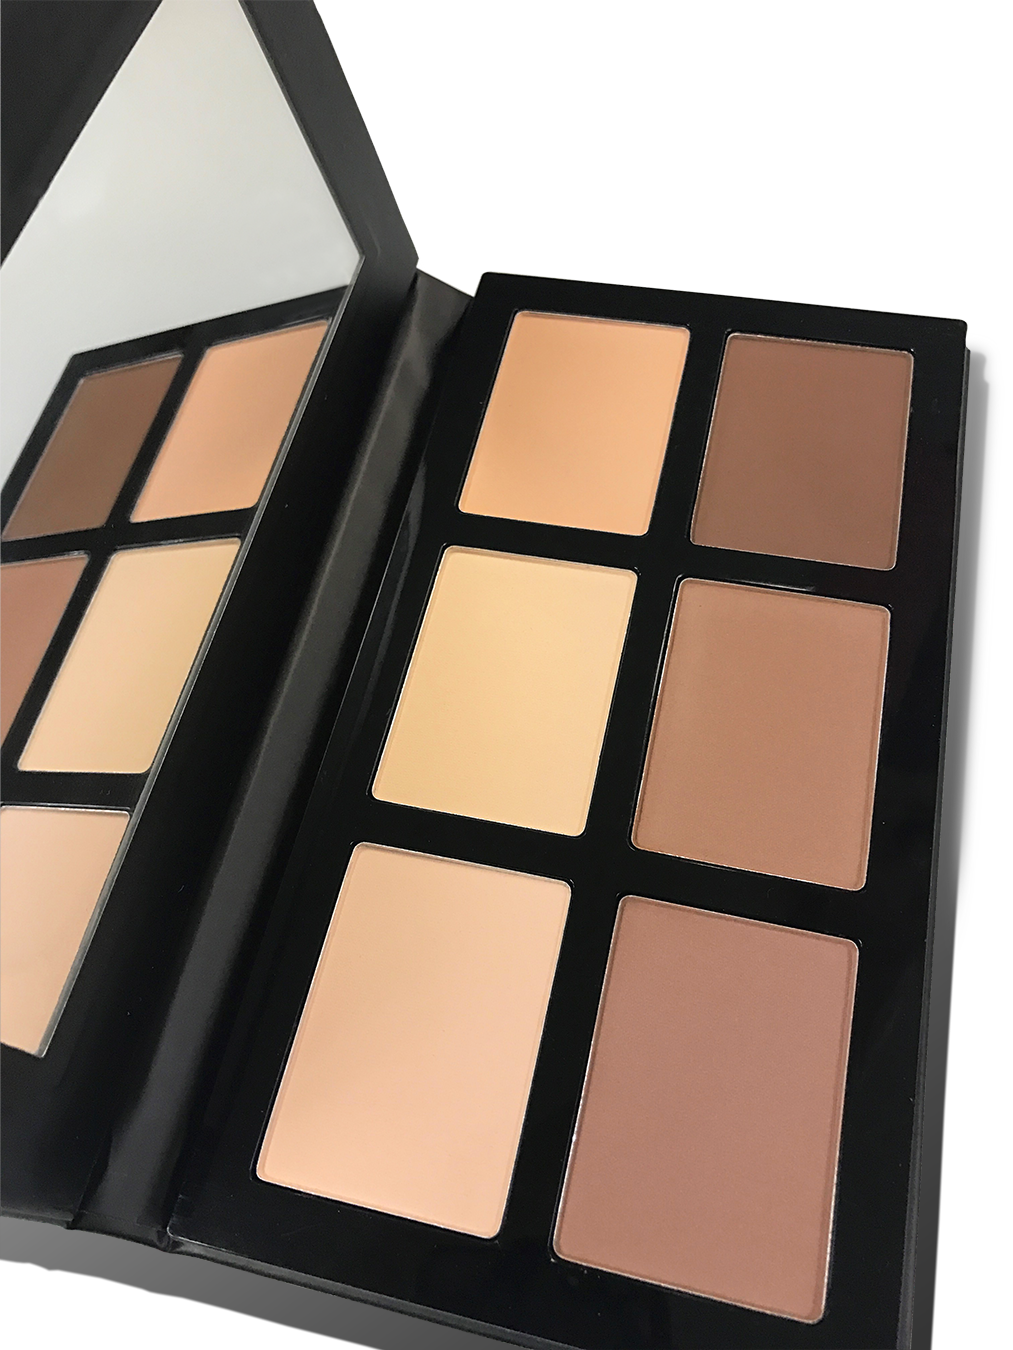 Our Bestselling Pro Contour Palette Offers A Selection Of Easy Blend Beauty Creations Cosmetics Angel Glow Highlight And Shades Which Work With Variety Skin Tones